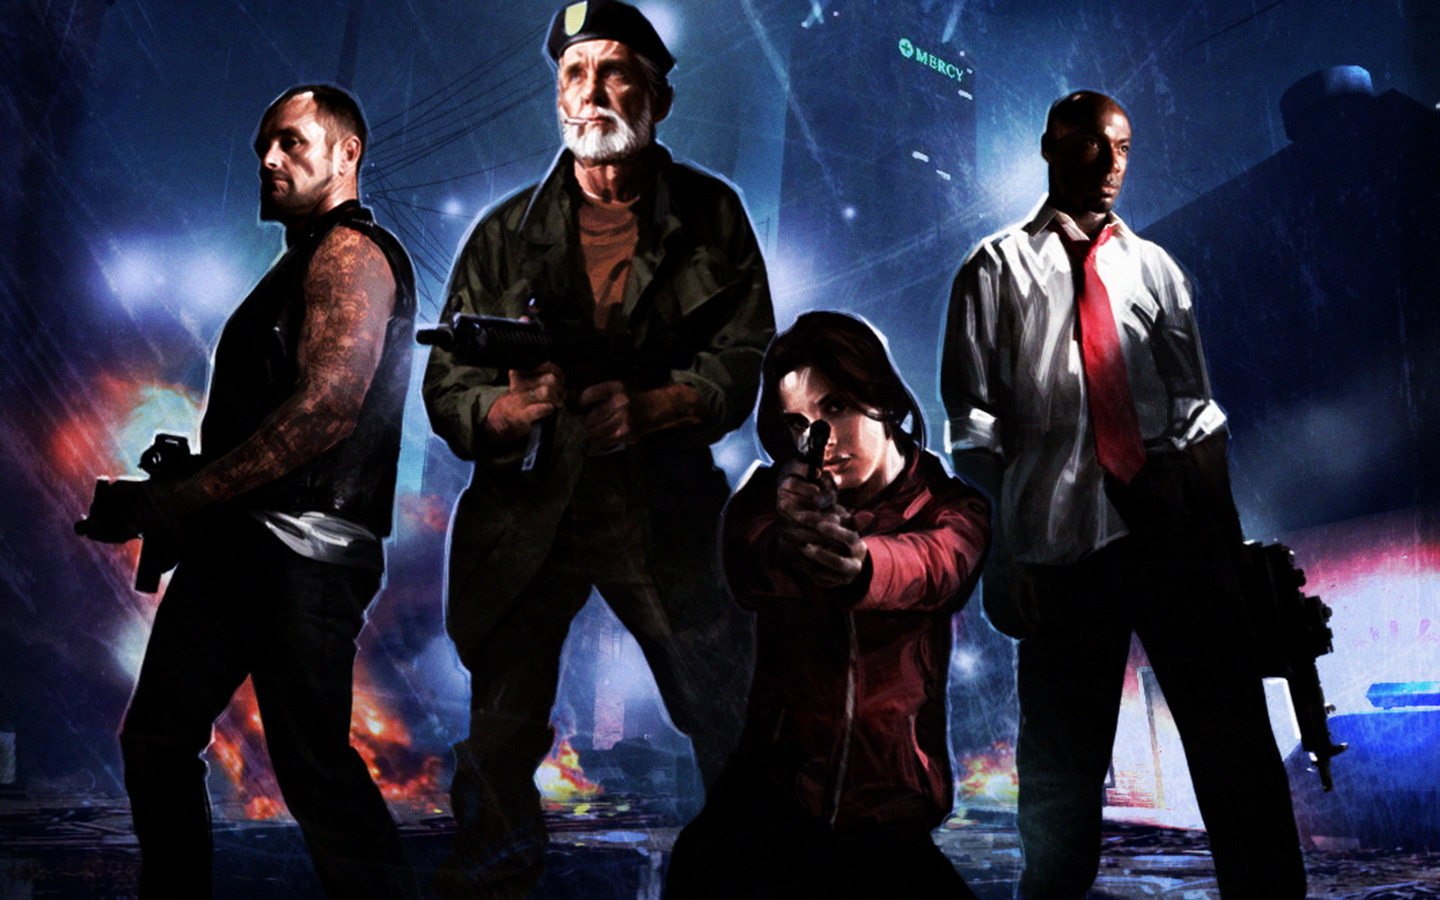 Left 4 Dead Wallpaper in 1440x900